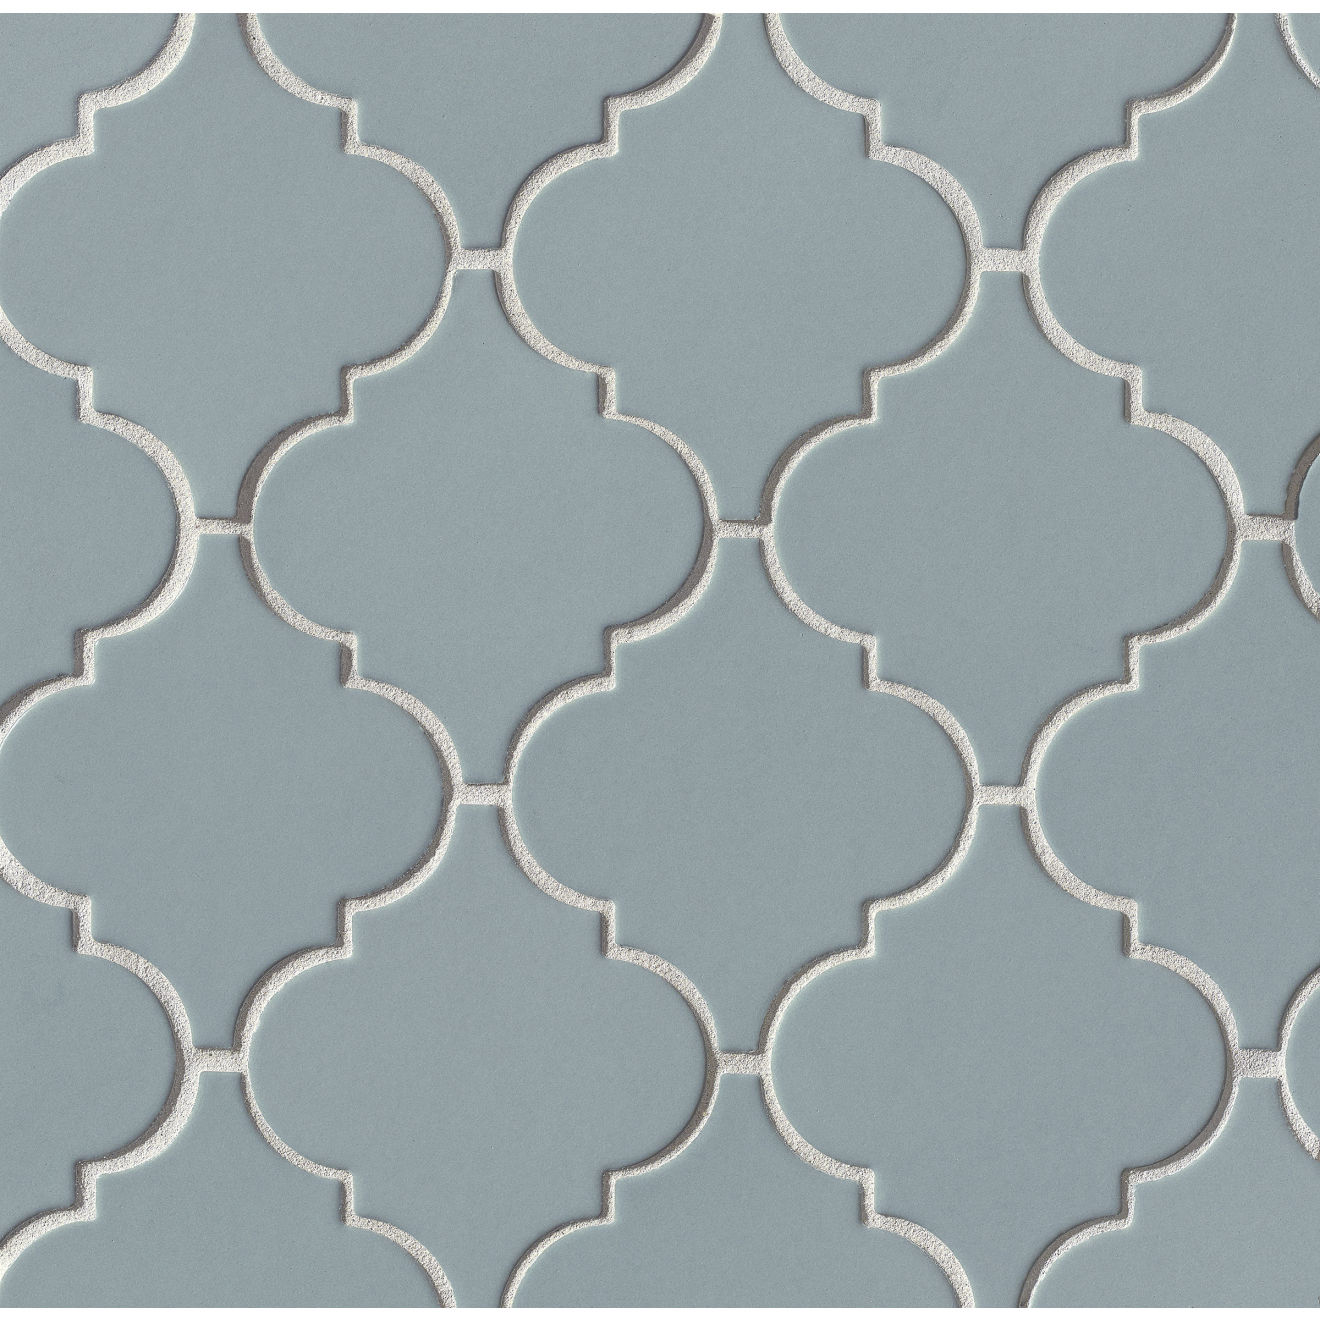 Costa Allegra Floor & Wall Mosaic in Tide